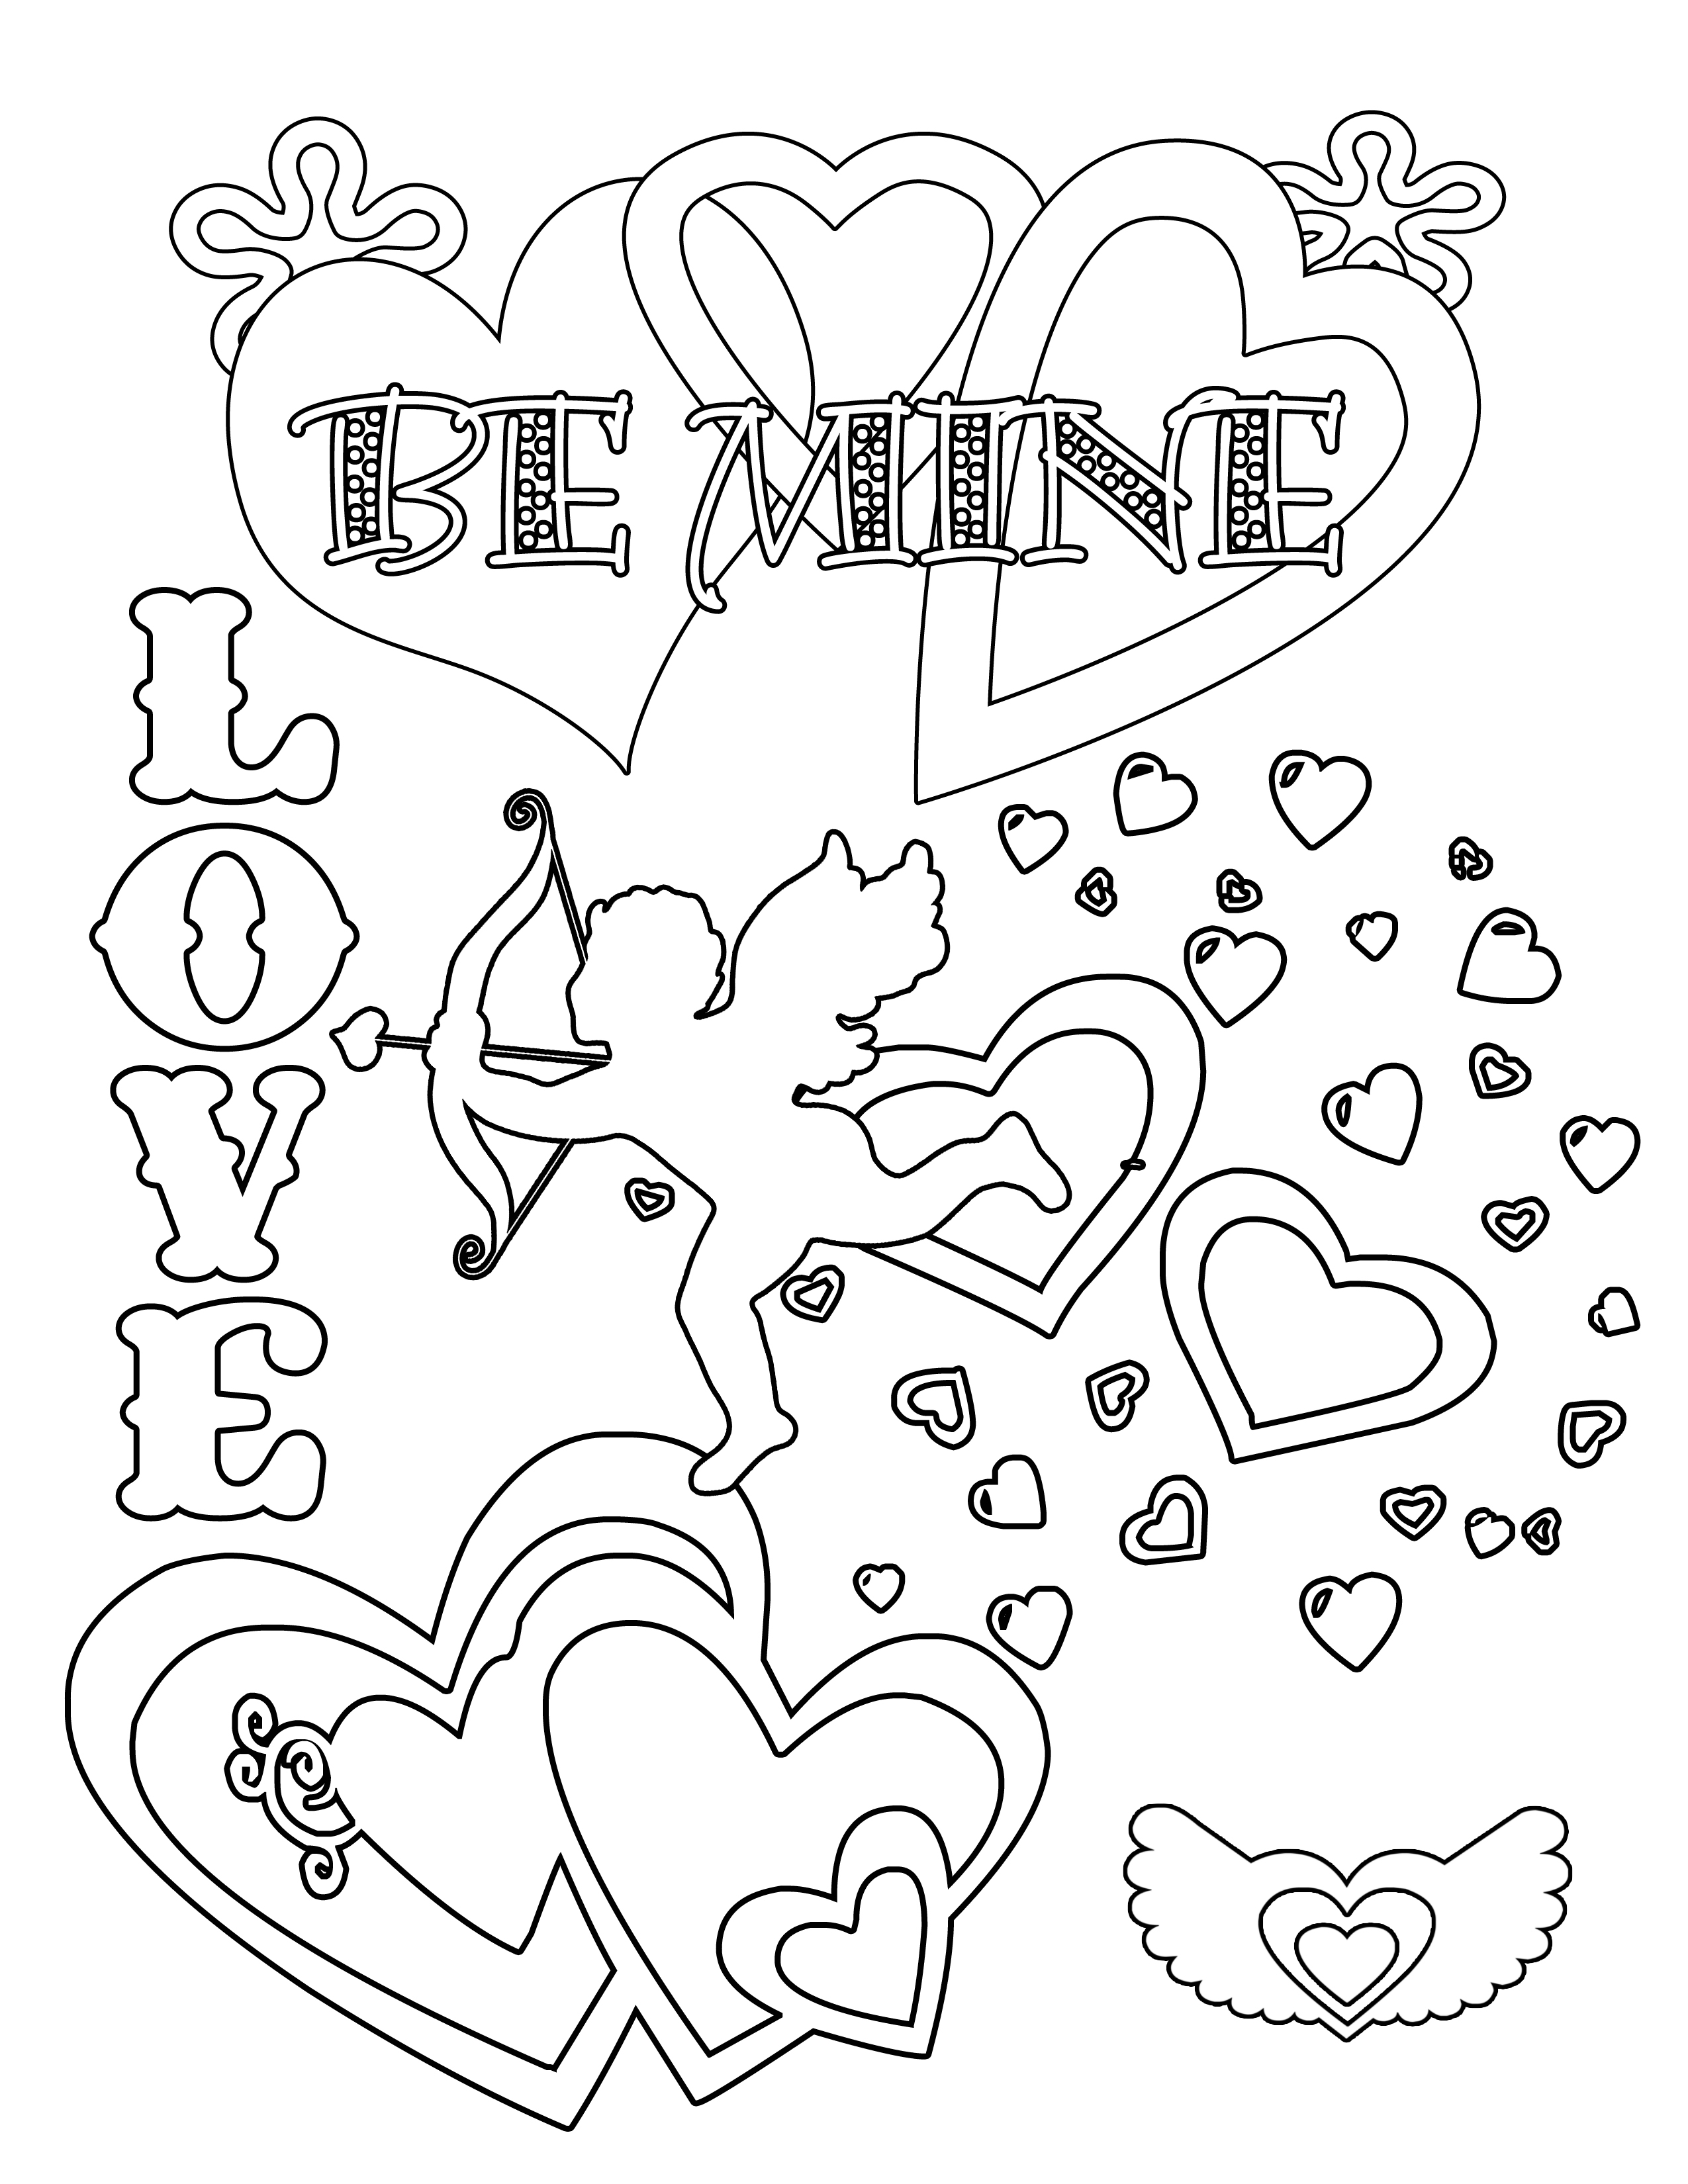 Cute Drawing For Him at GetDrawings.com | Free for personal use Cute ...